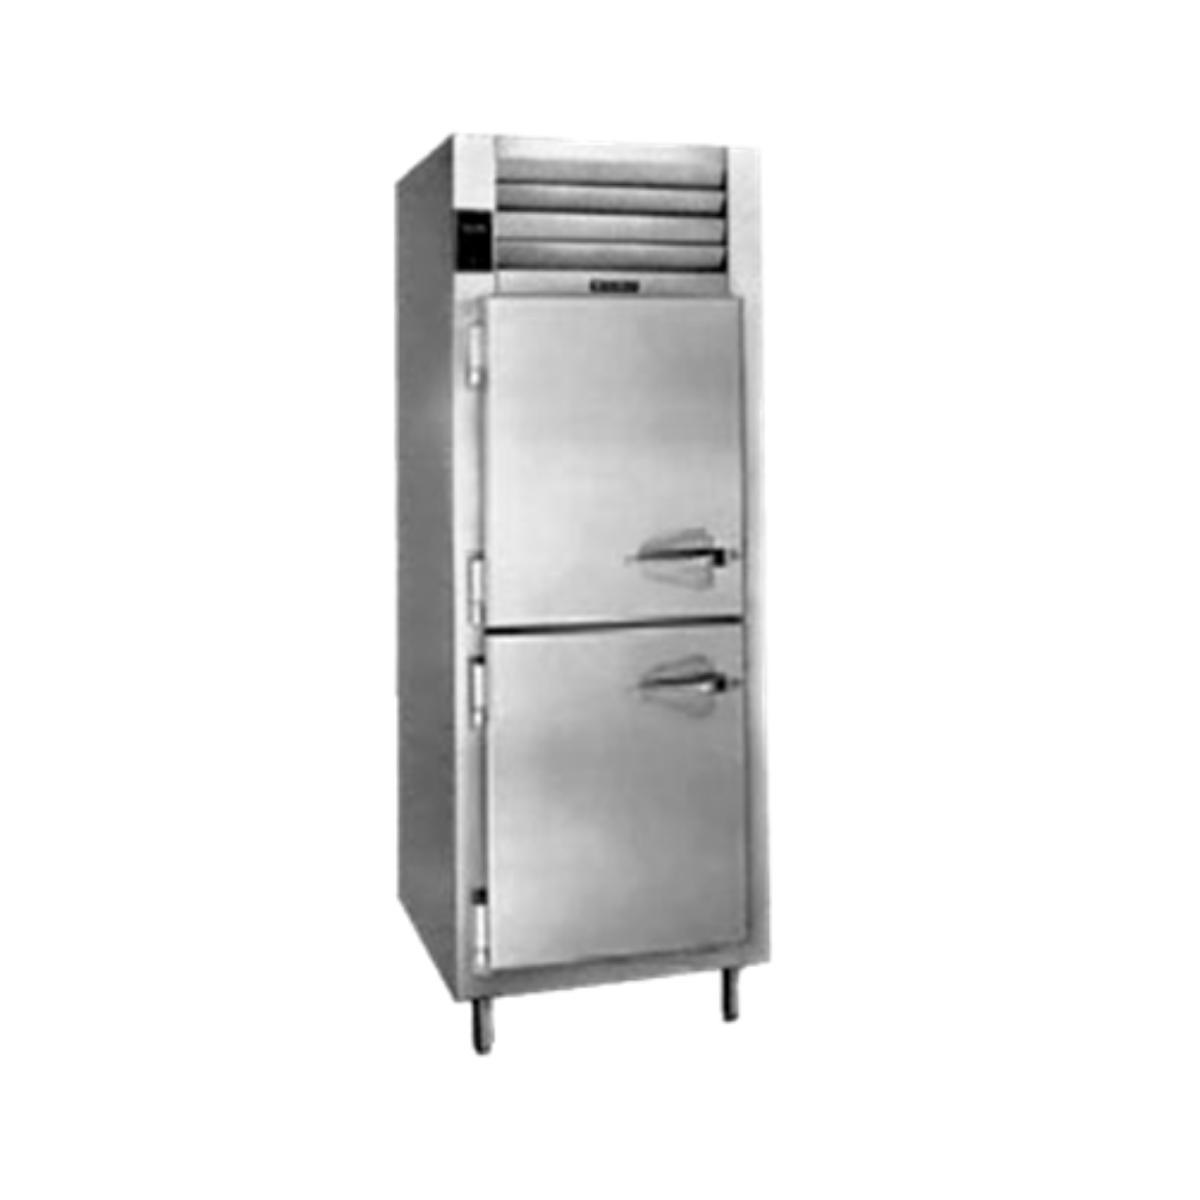 Traulsen AHT132NUT-HHS Reach-in Refrigerator